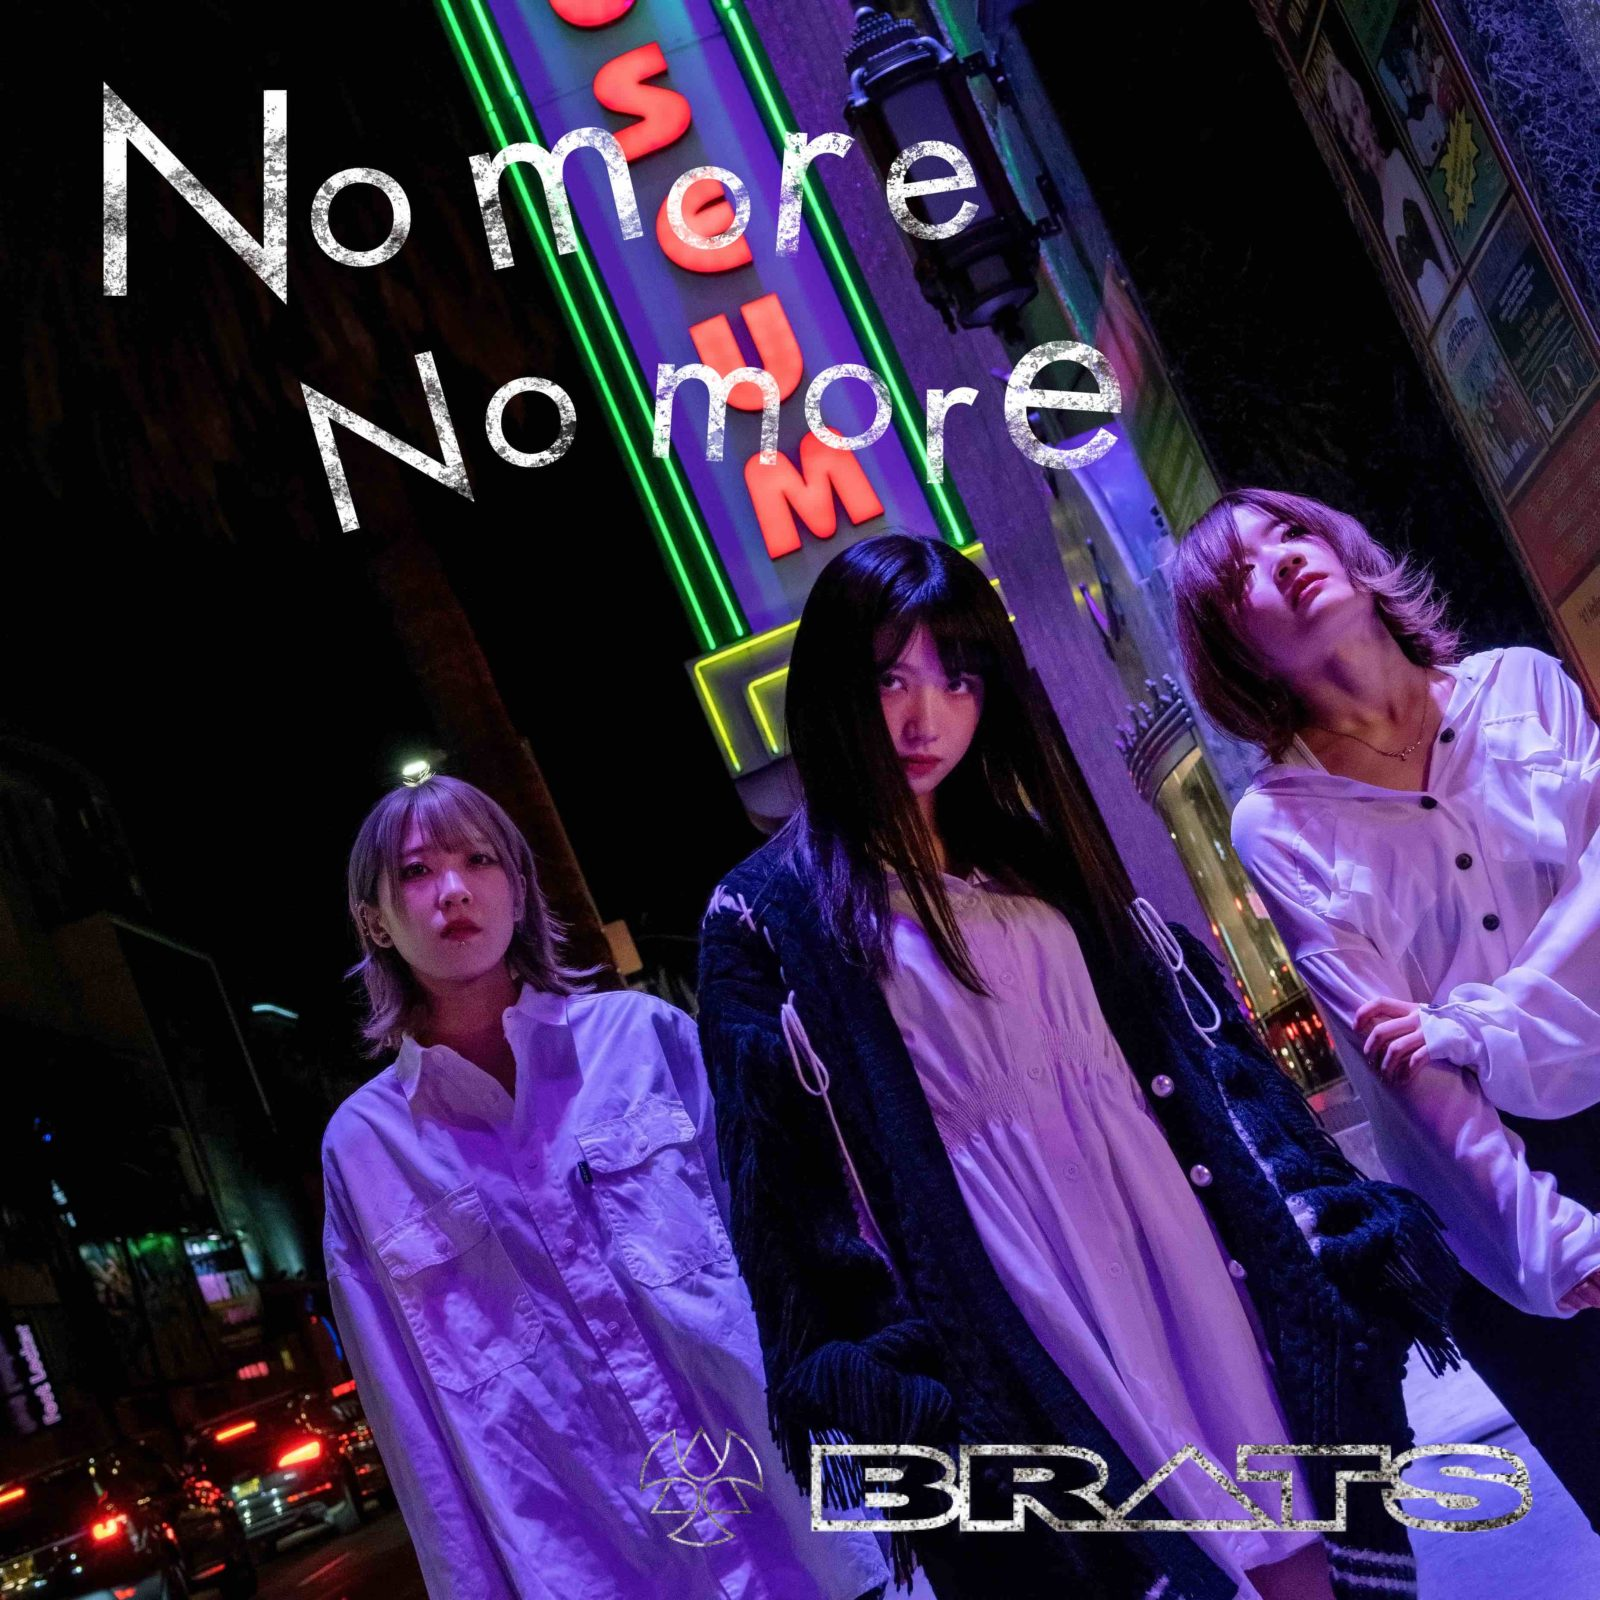 BRATS、7ヶ月連続配信中の第2弾配信曲 「No more No more」の MUSIC VIDEO を公開サムネイル画像